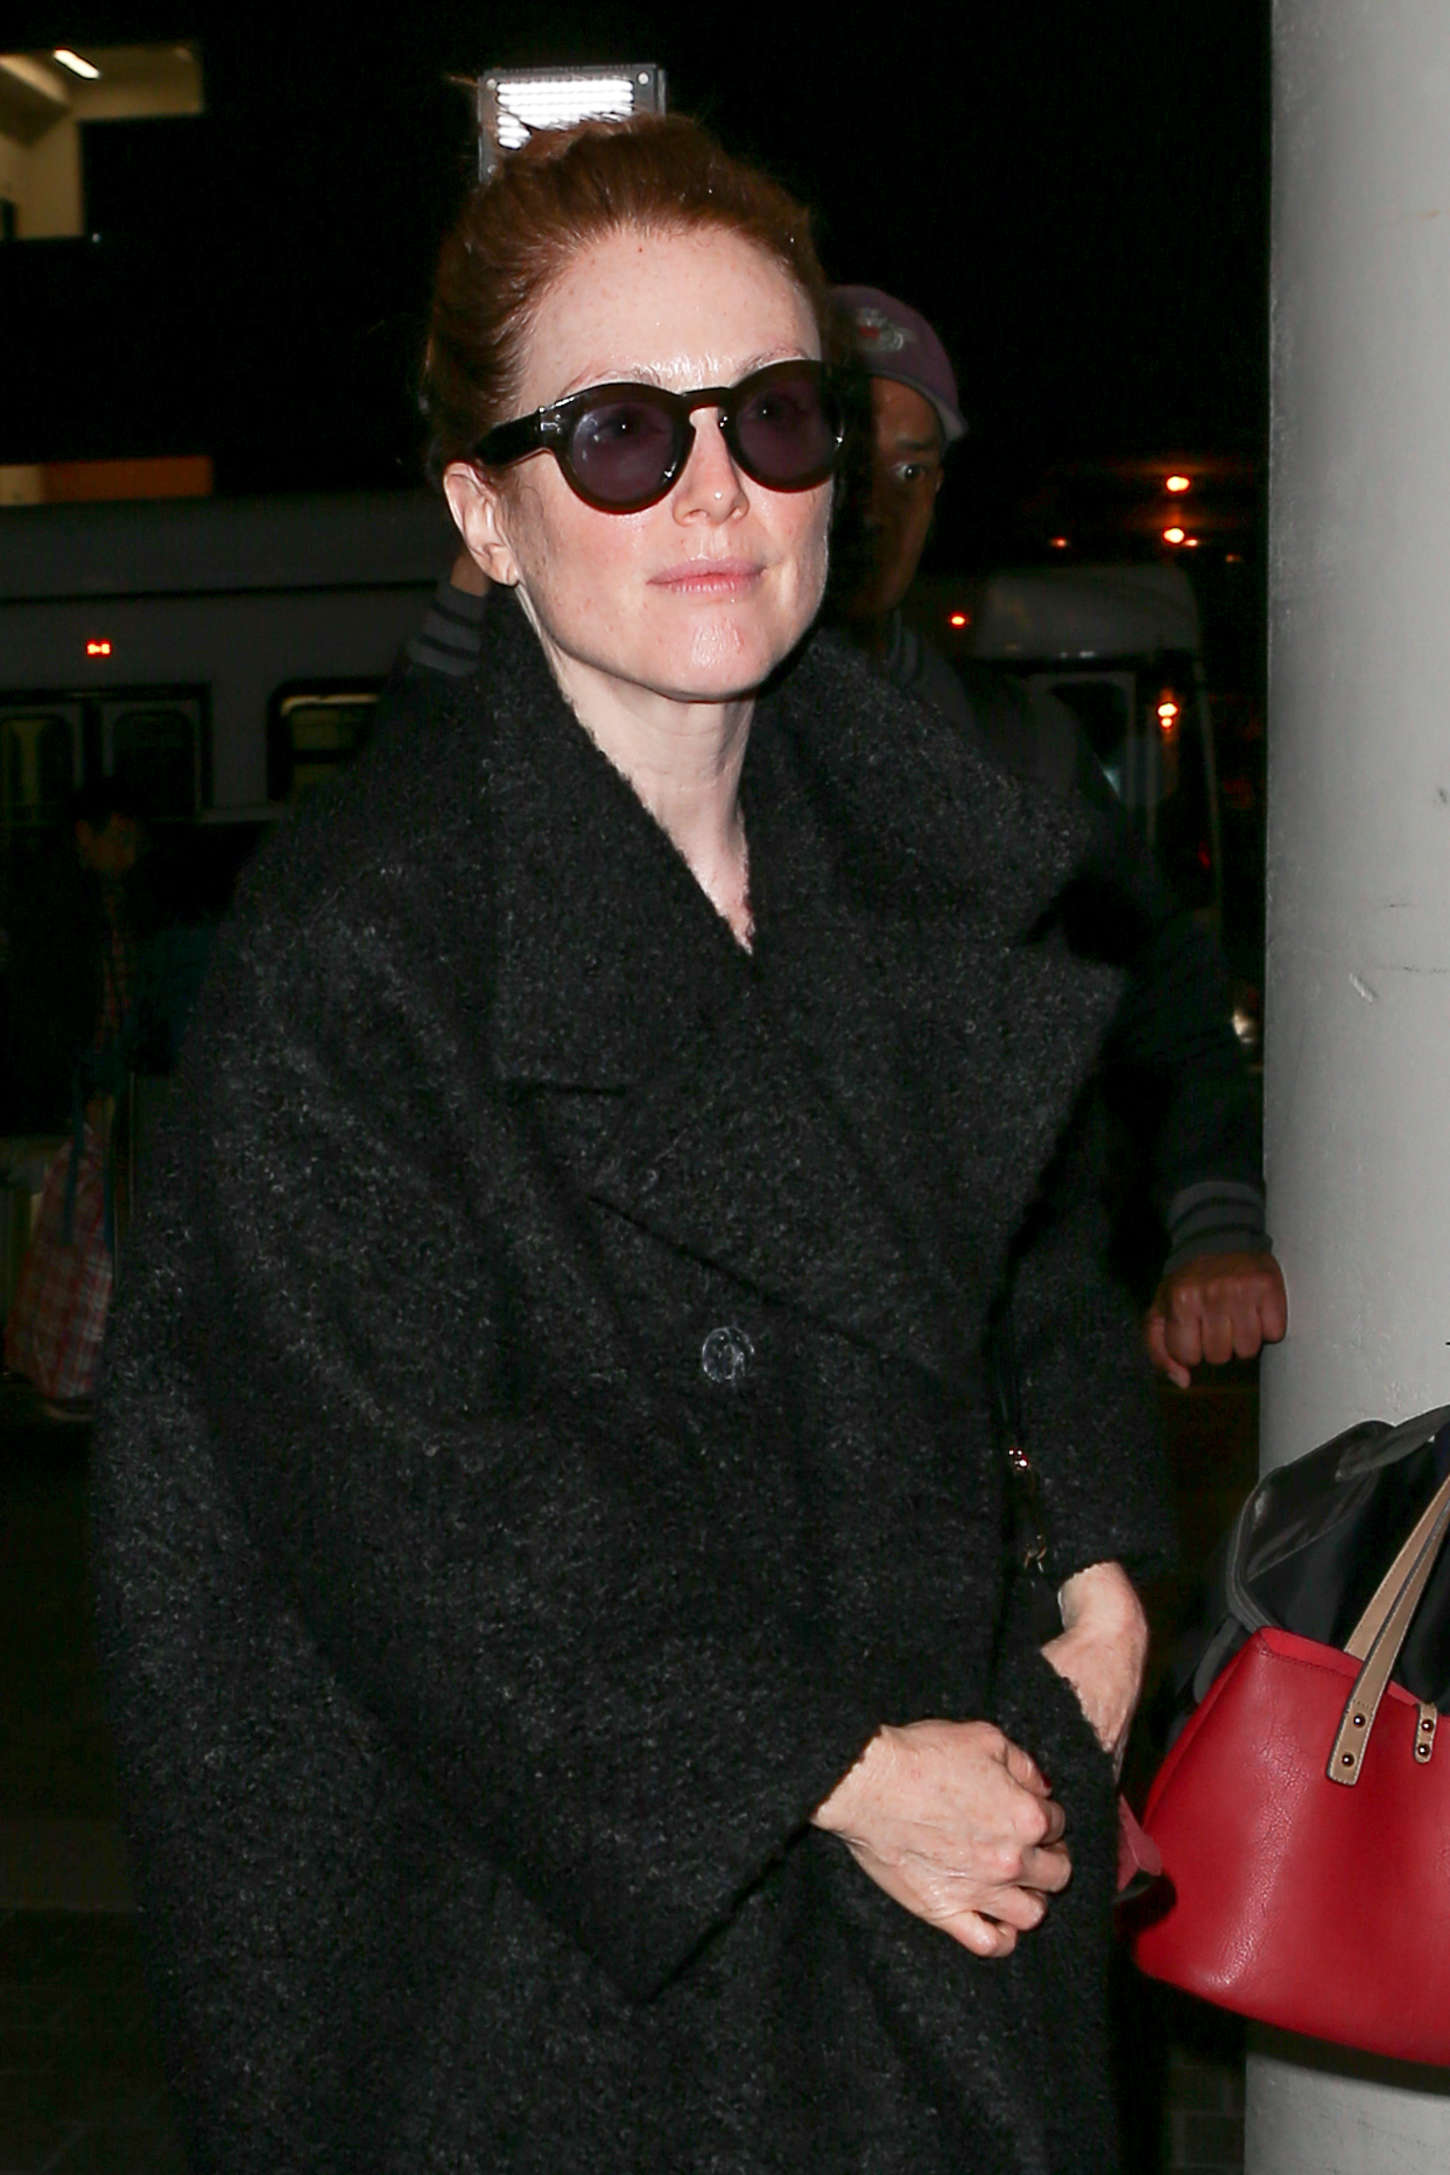 Julianne Moore - Arriving at LAX airport in Los Angeles